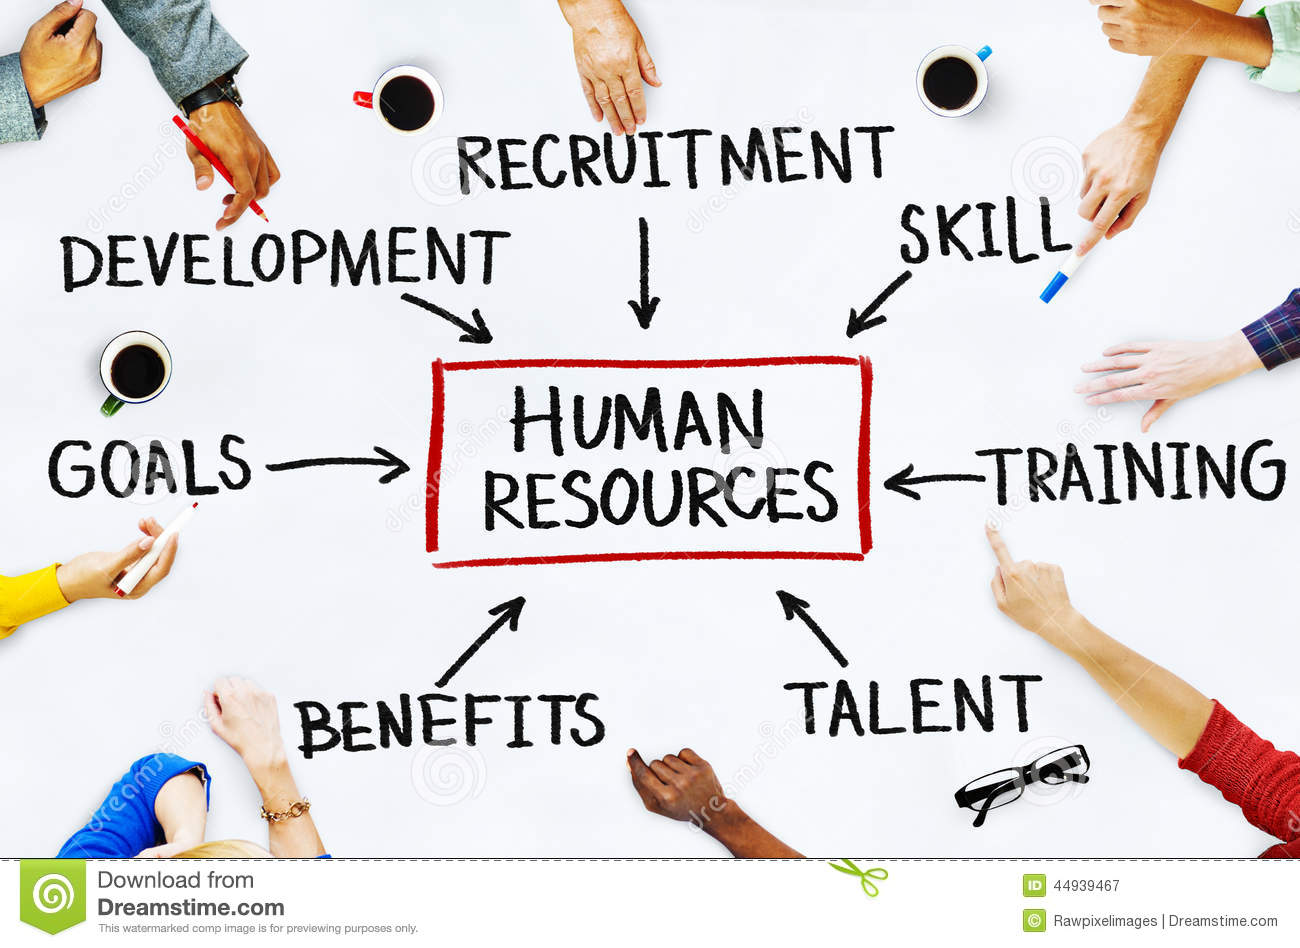 human relations i A program designed to provide professionals with understanding and skills in  human relations the master of science in human relations program consists of  a.